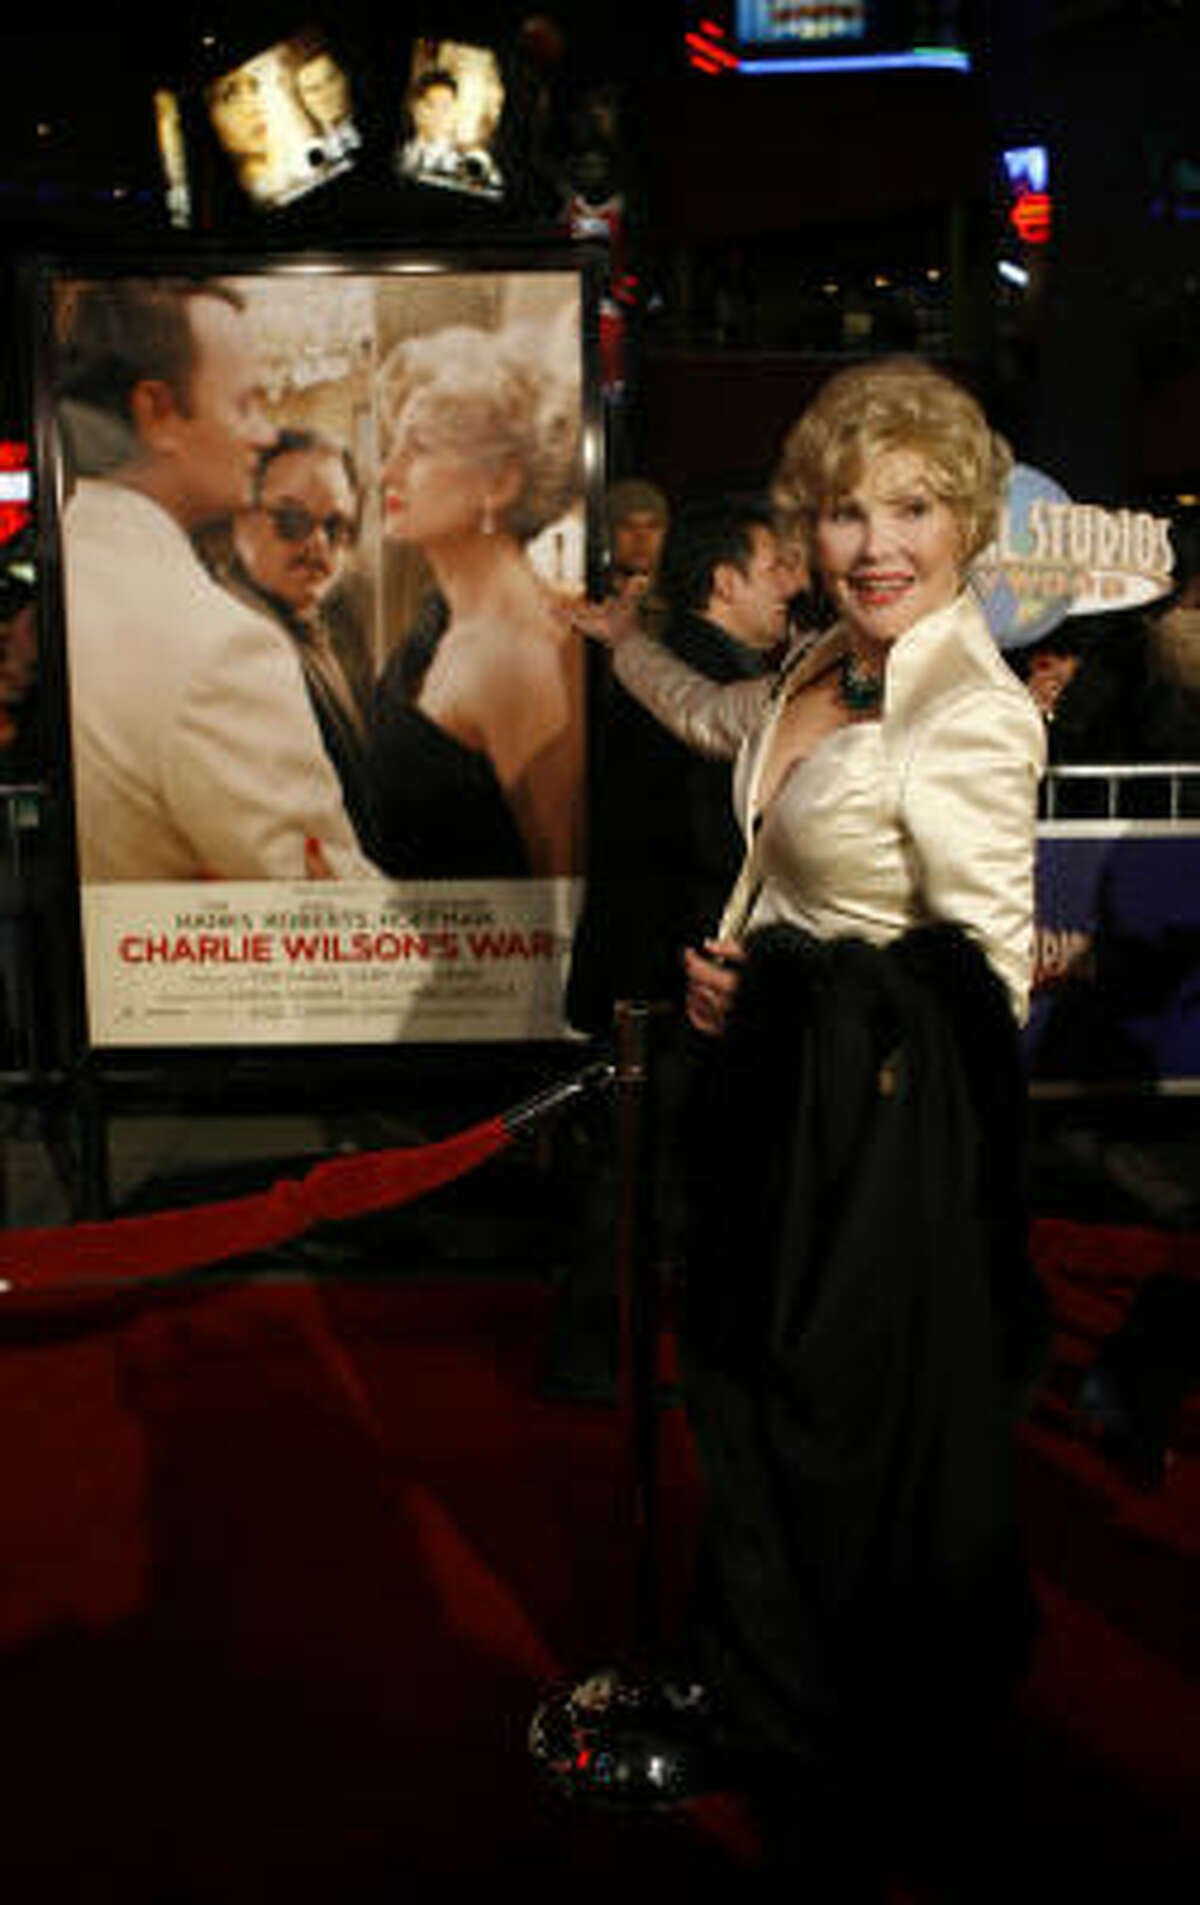 Joanne Herring walks the red carpet for the premiere of Charlie Wilson's War at Universal Studios in Los Angeles. Herring is played by Julia Roberts in the movie.